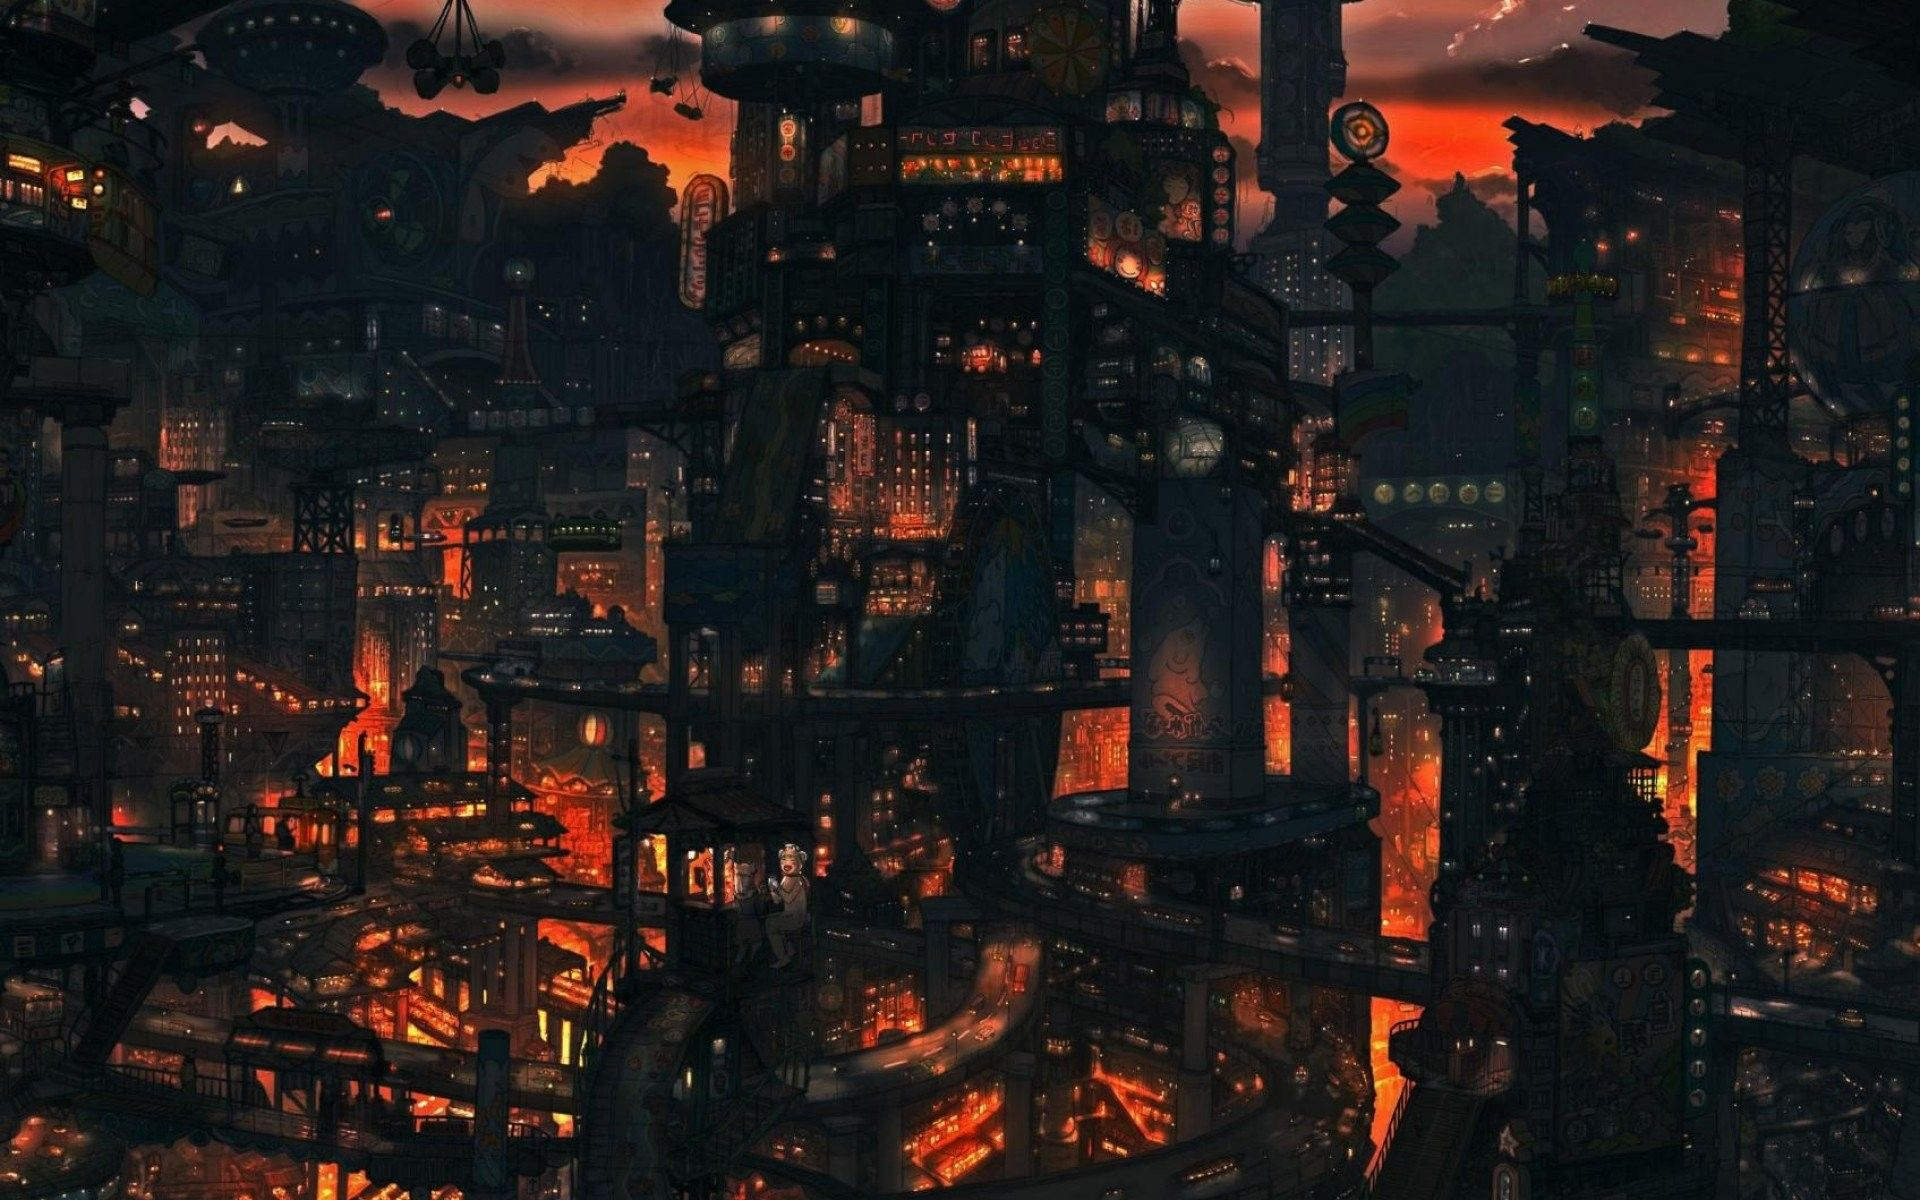 Aesthetic Anime Wallpapers City